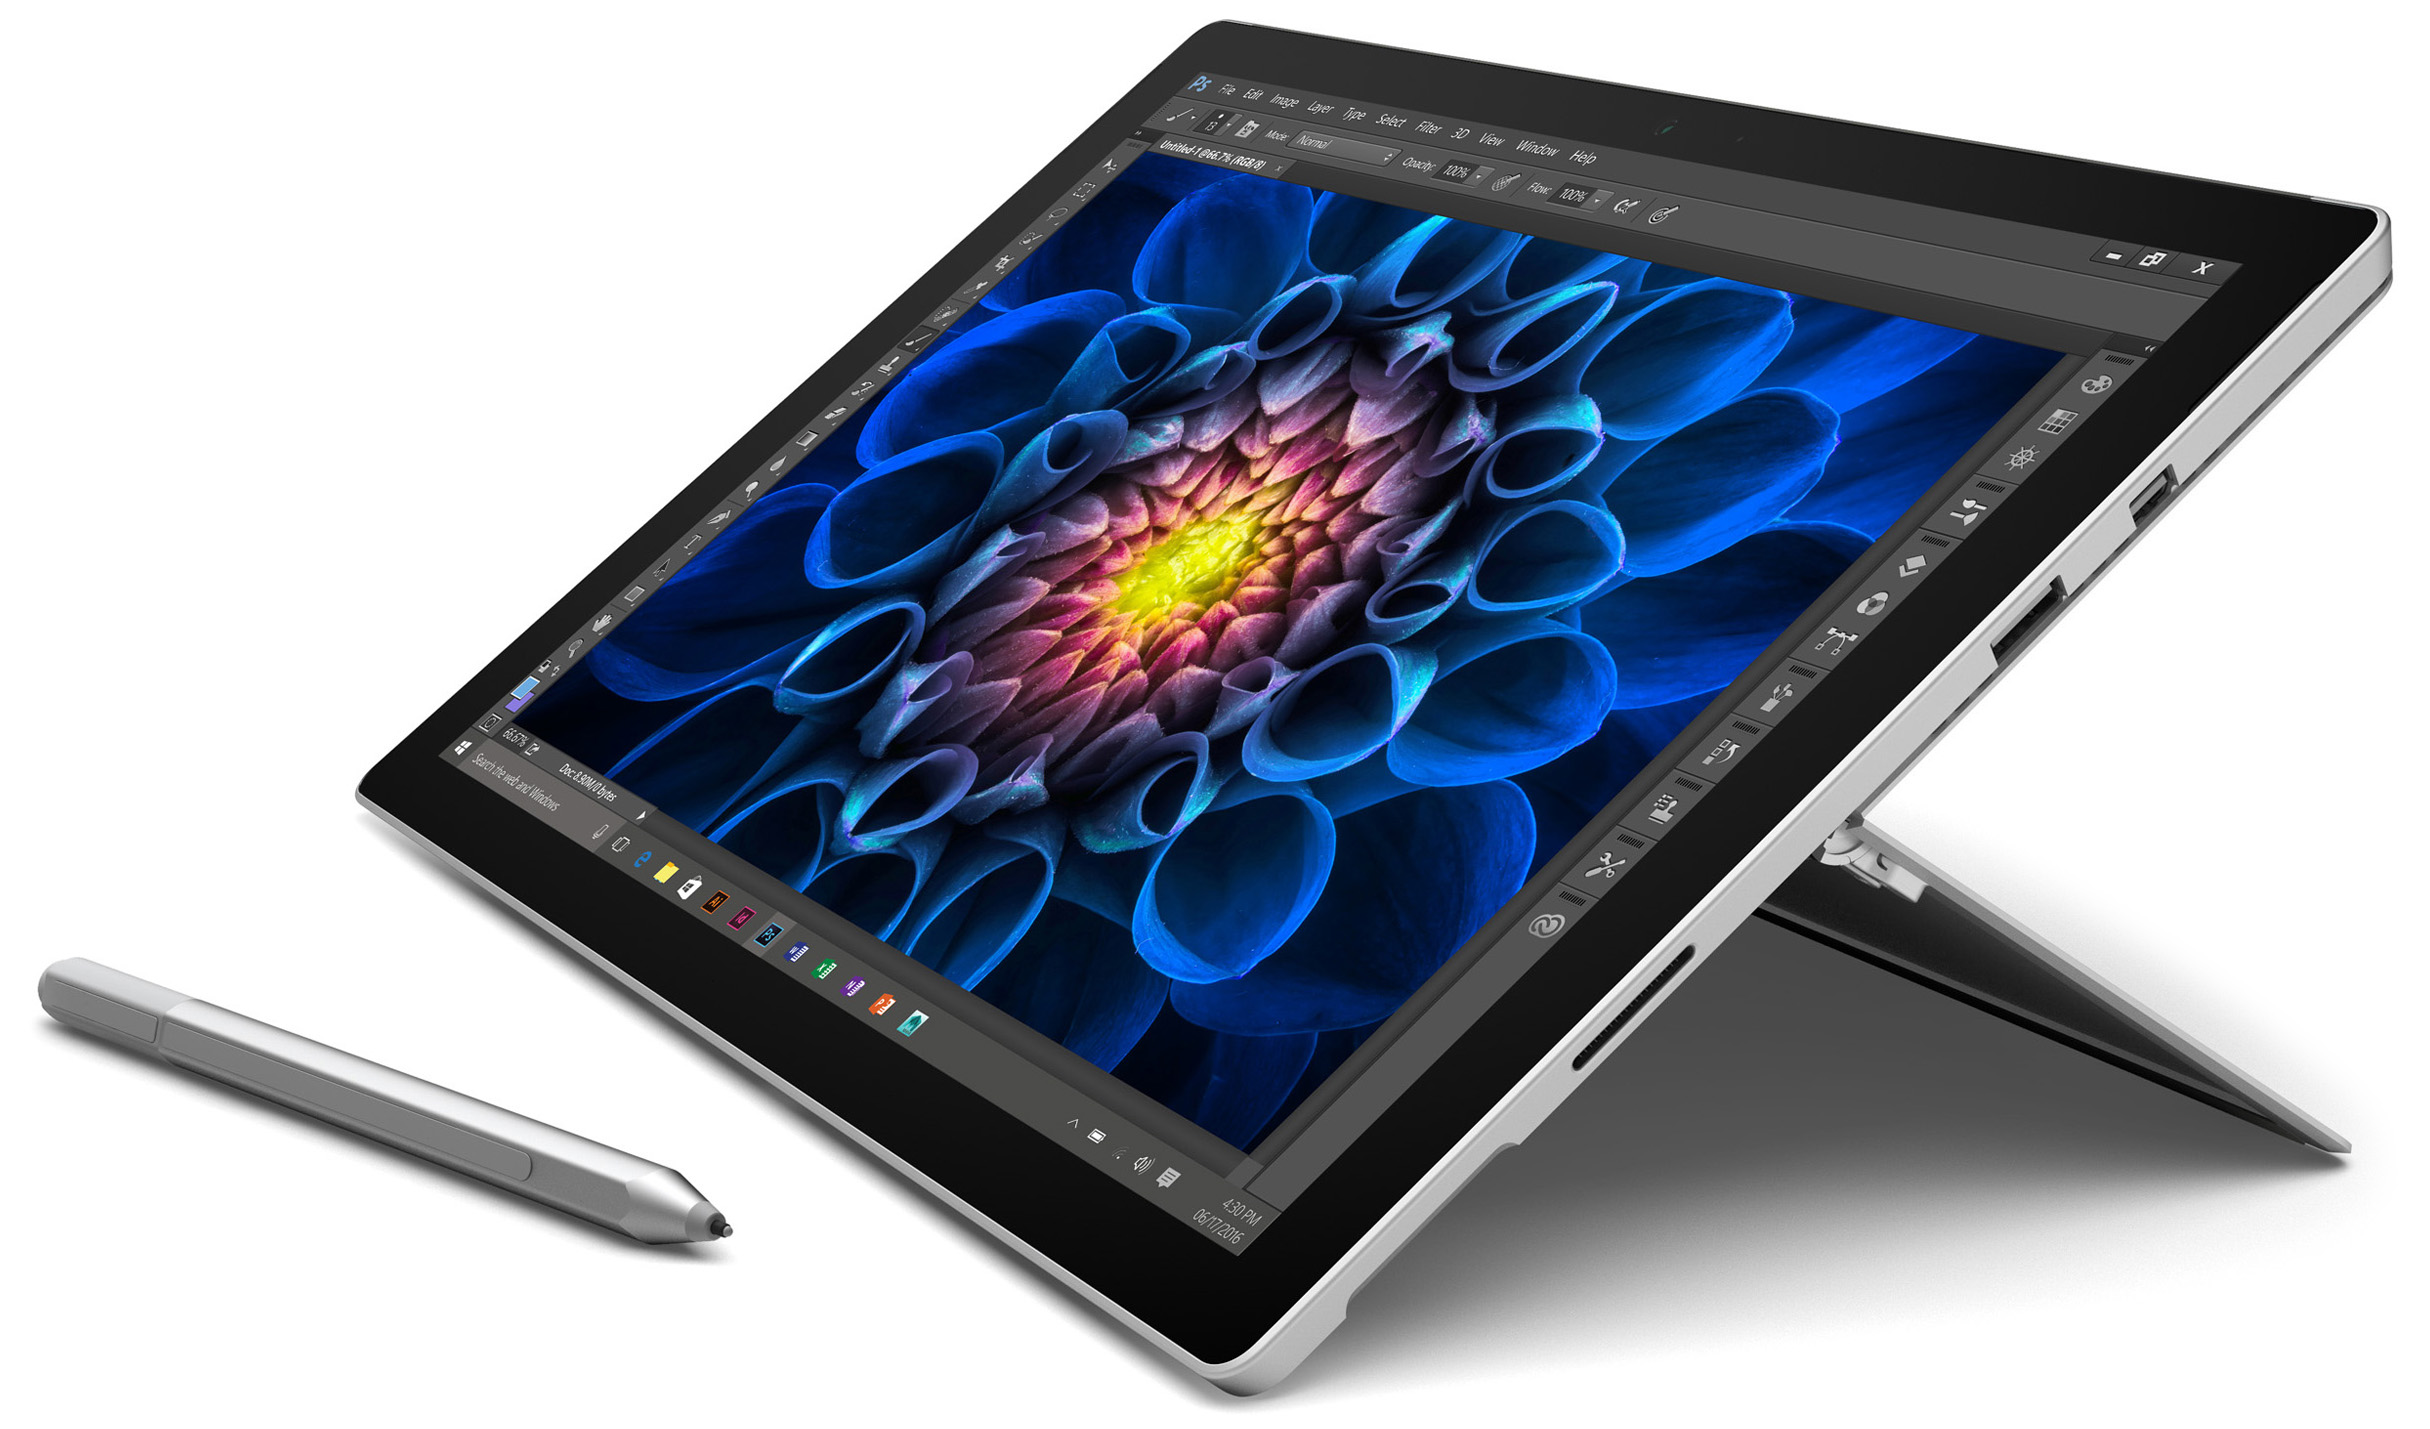 Microsoft Surface Pro 4 - 512GB / Intel Core i7